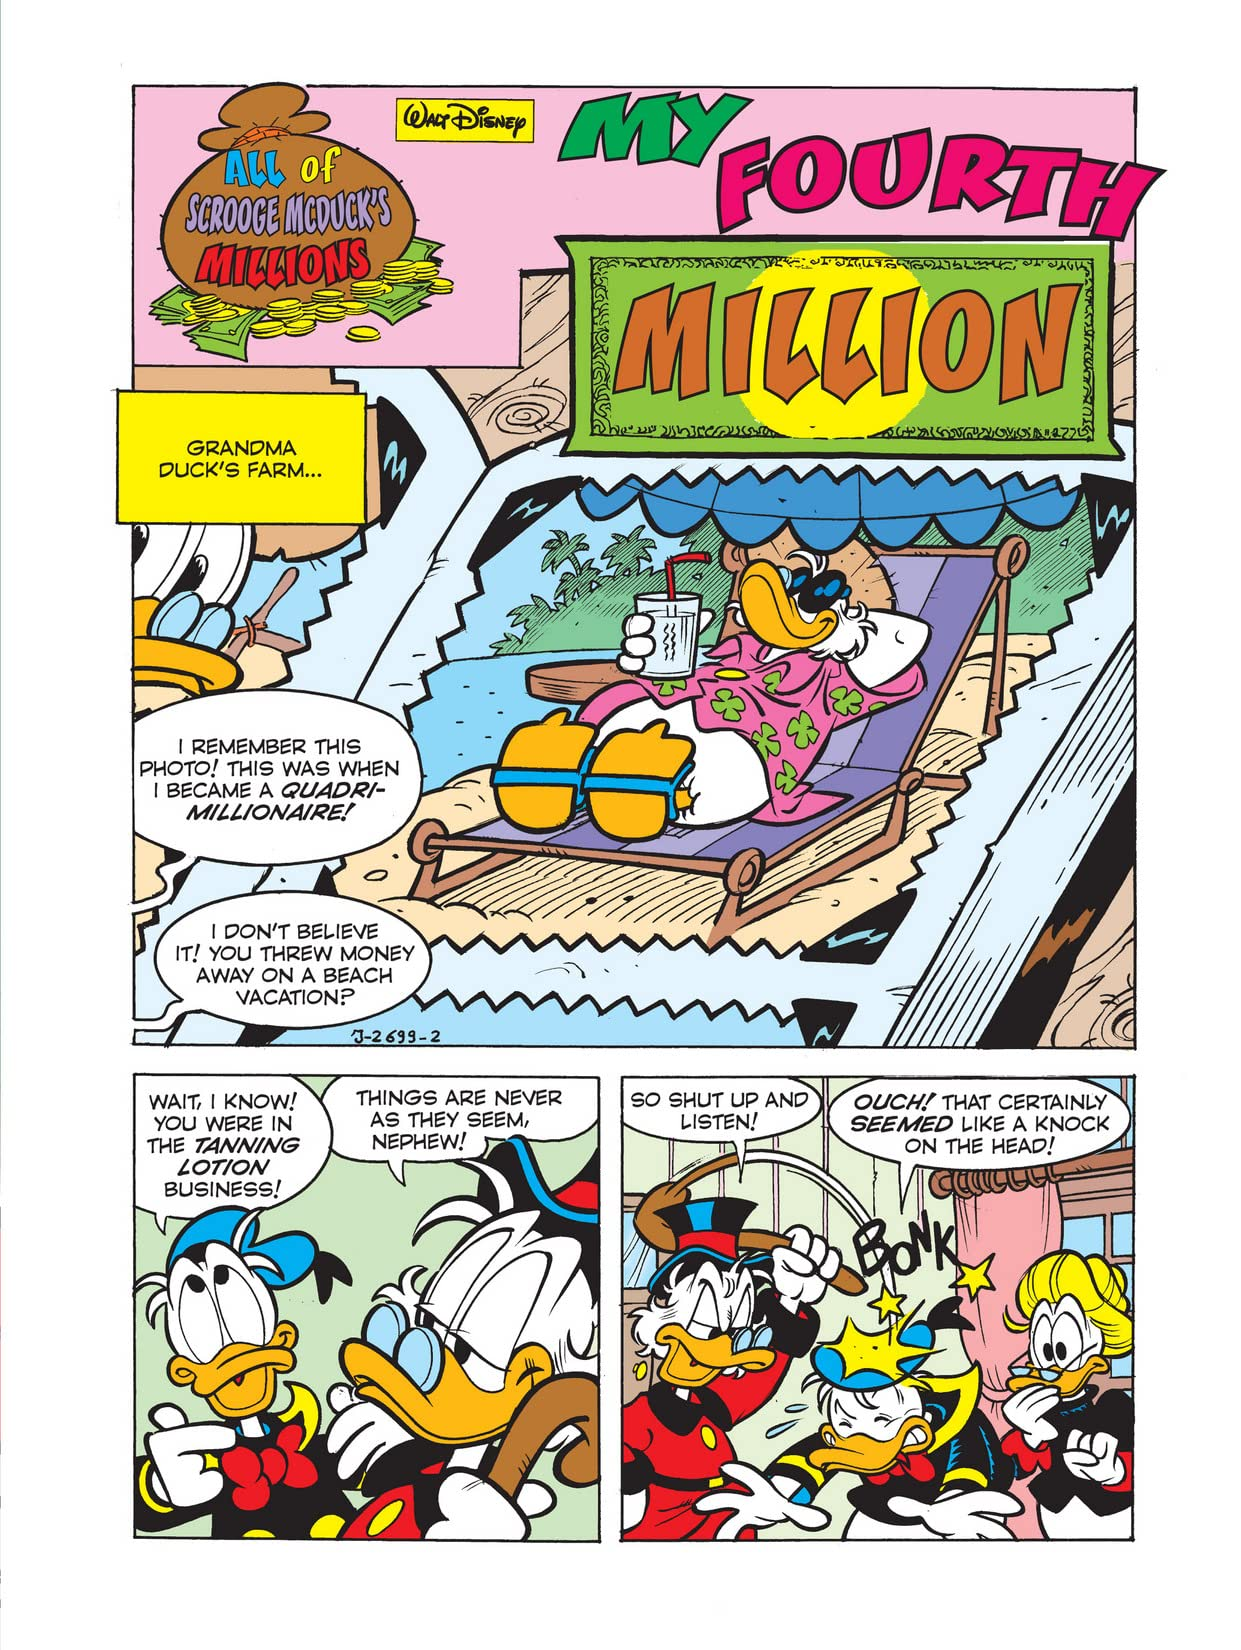 All of Scrooge McDuck's Millions #4: My Fourth Million